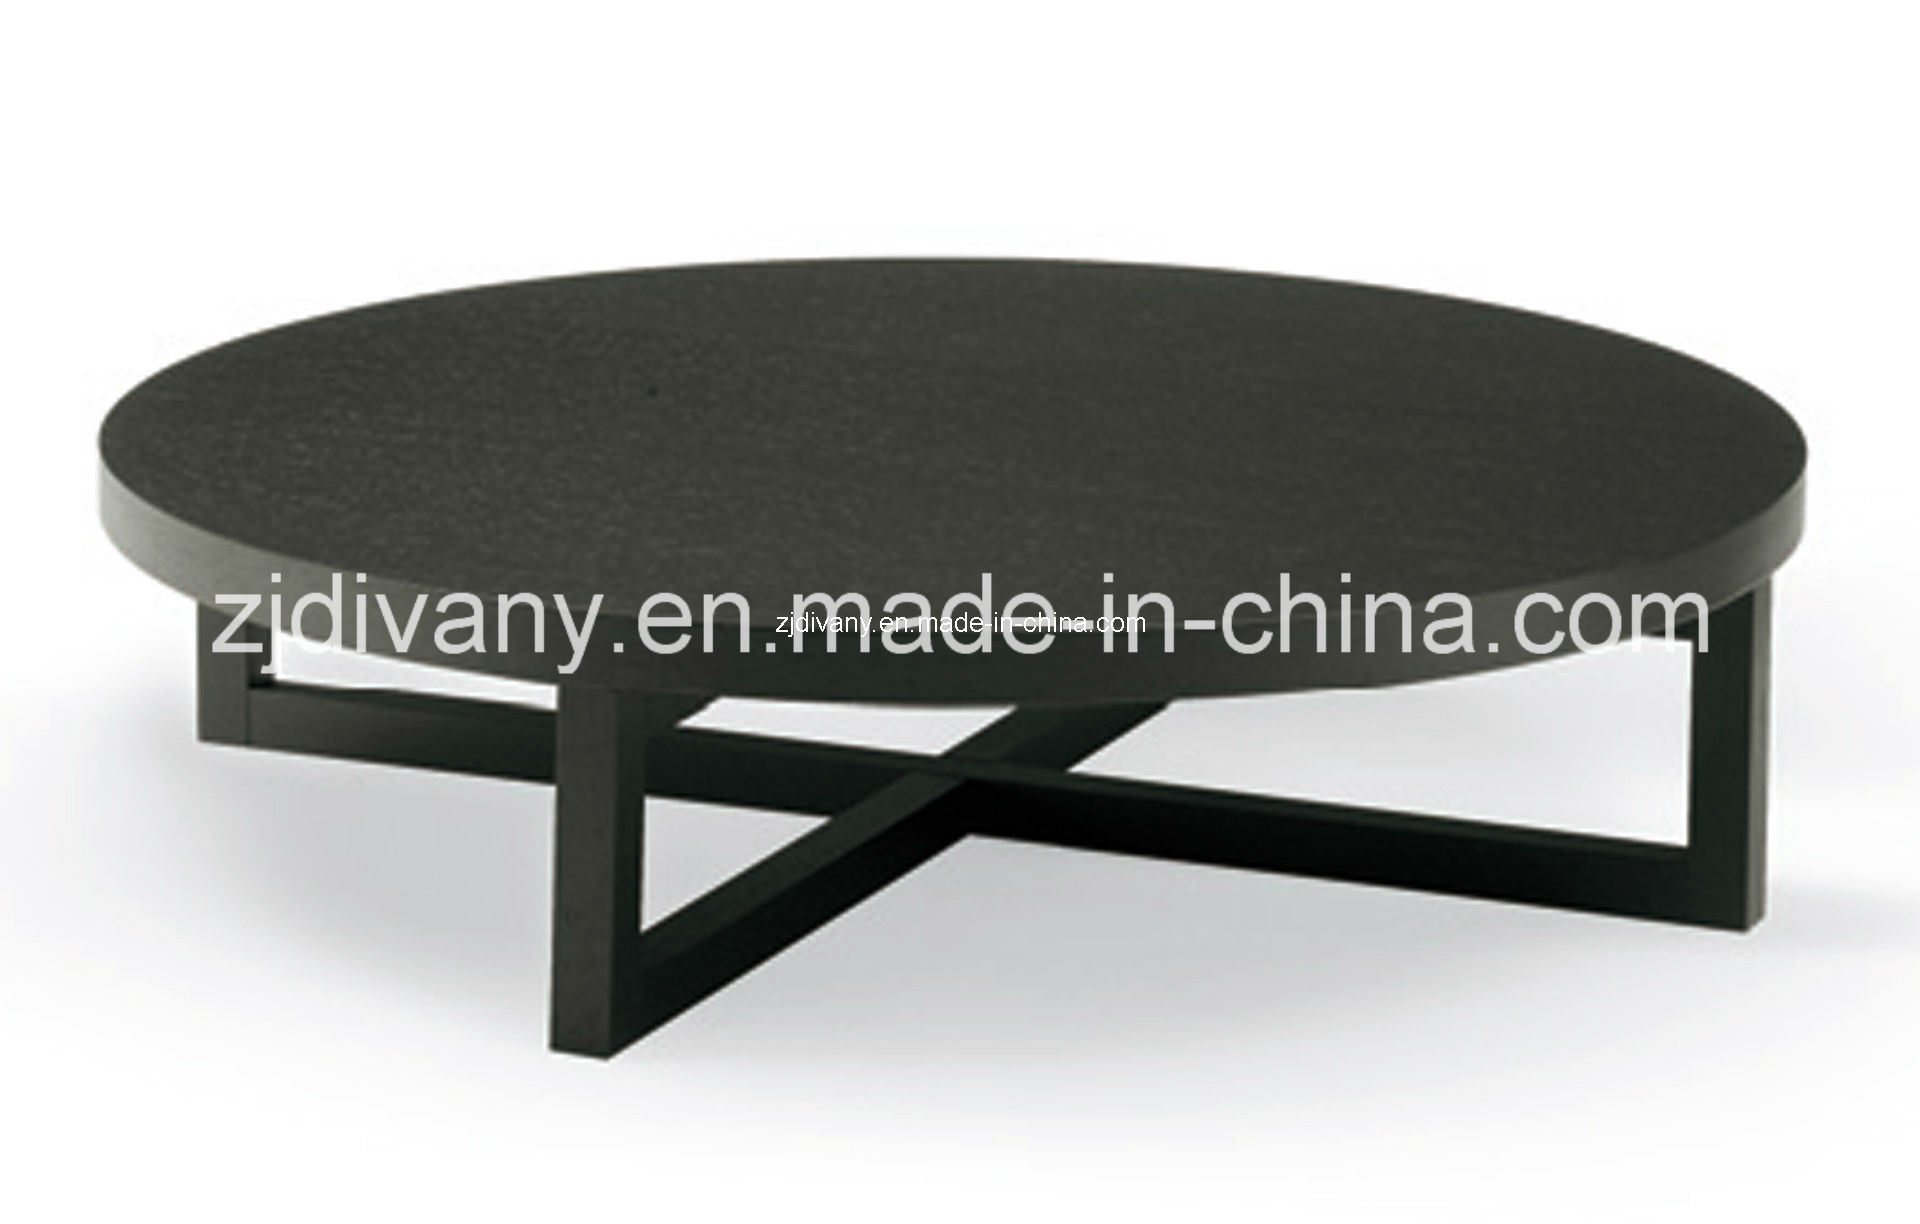 China Ikea Style Modern Wooden Round Coffee Table T 74a Photos Pictures Made In